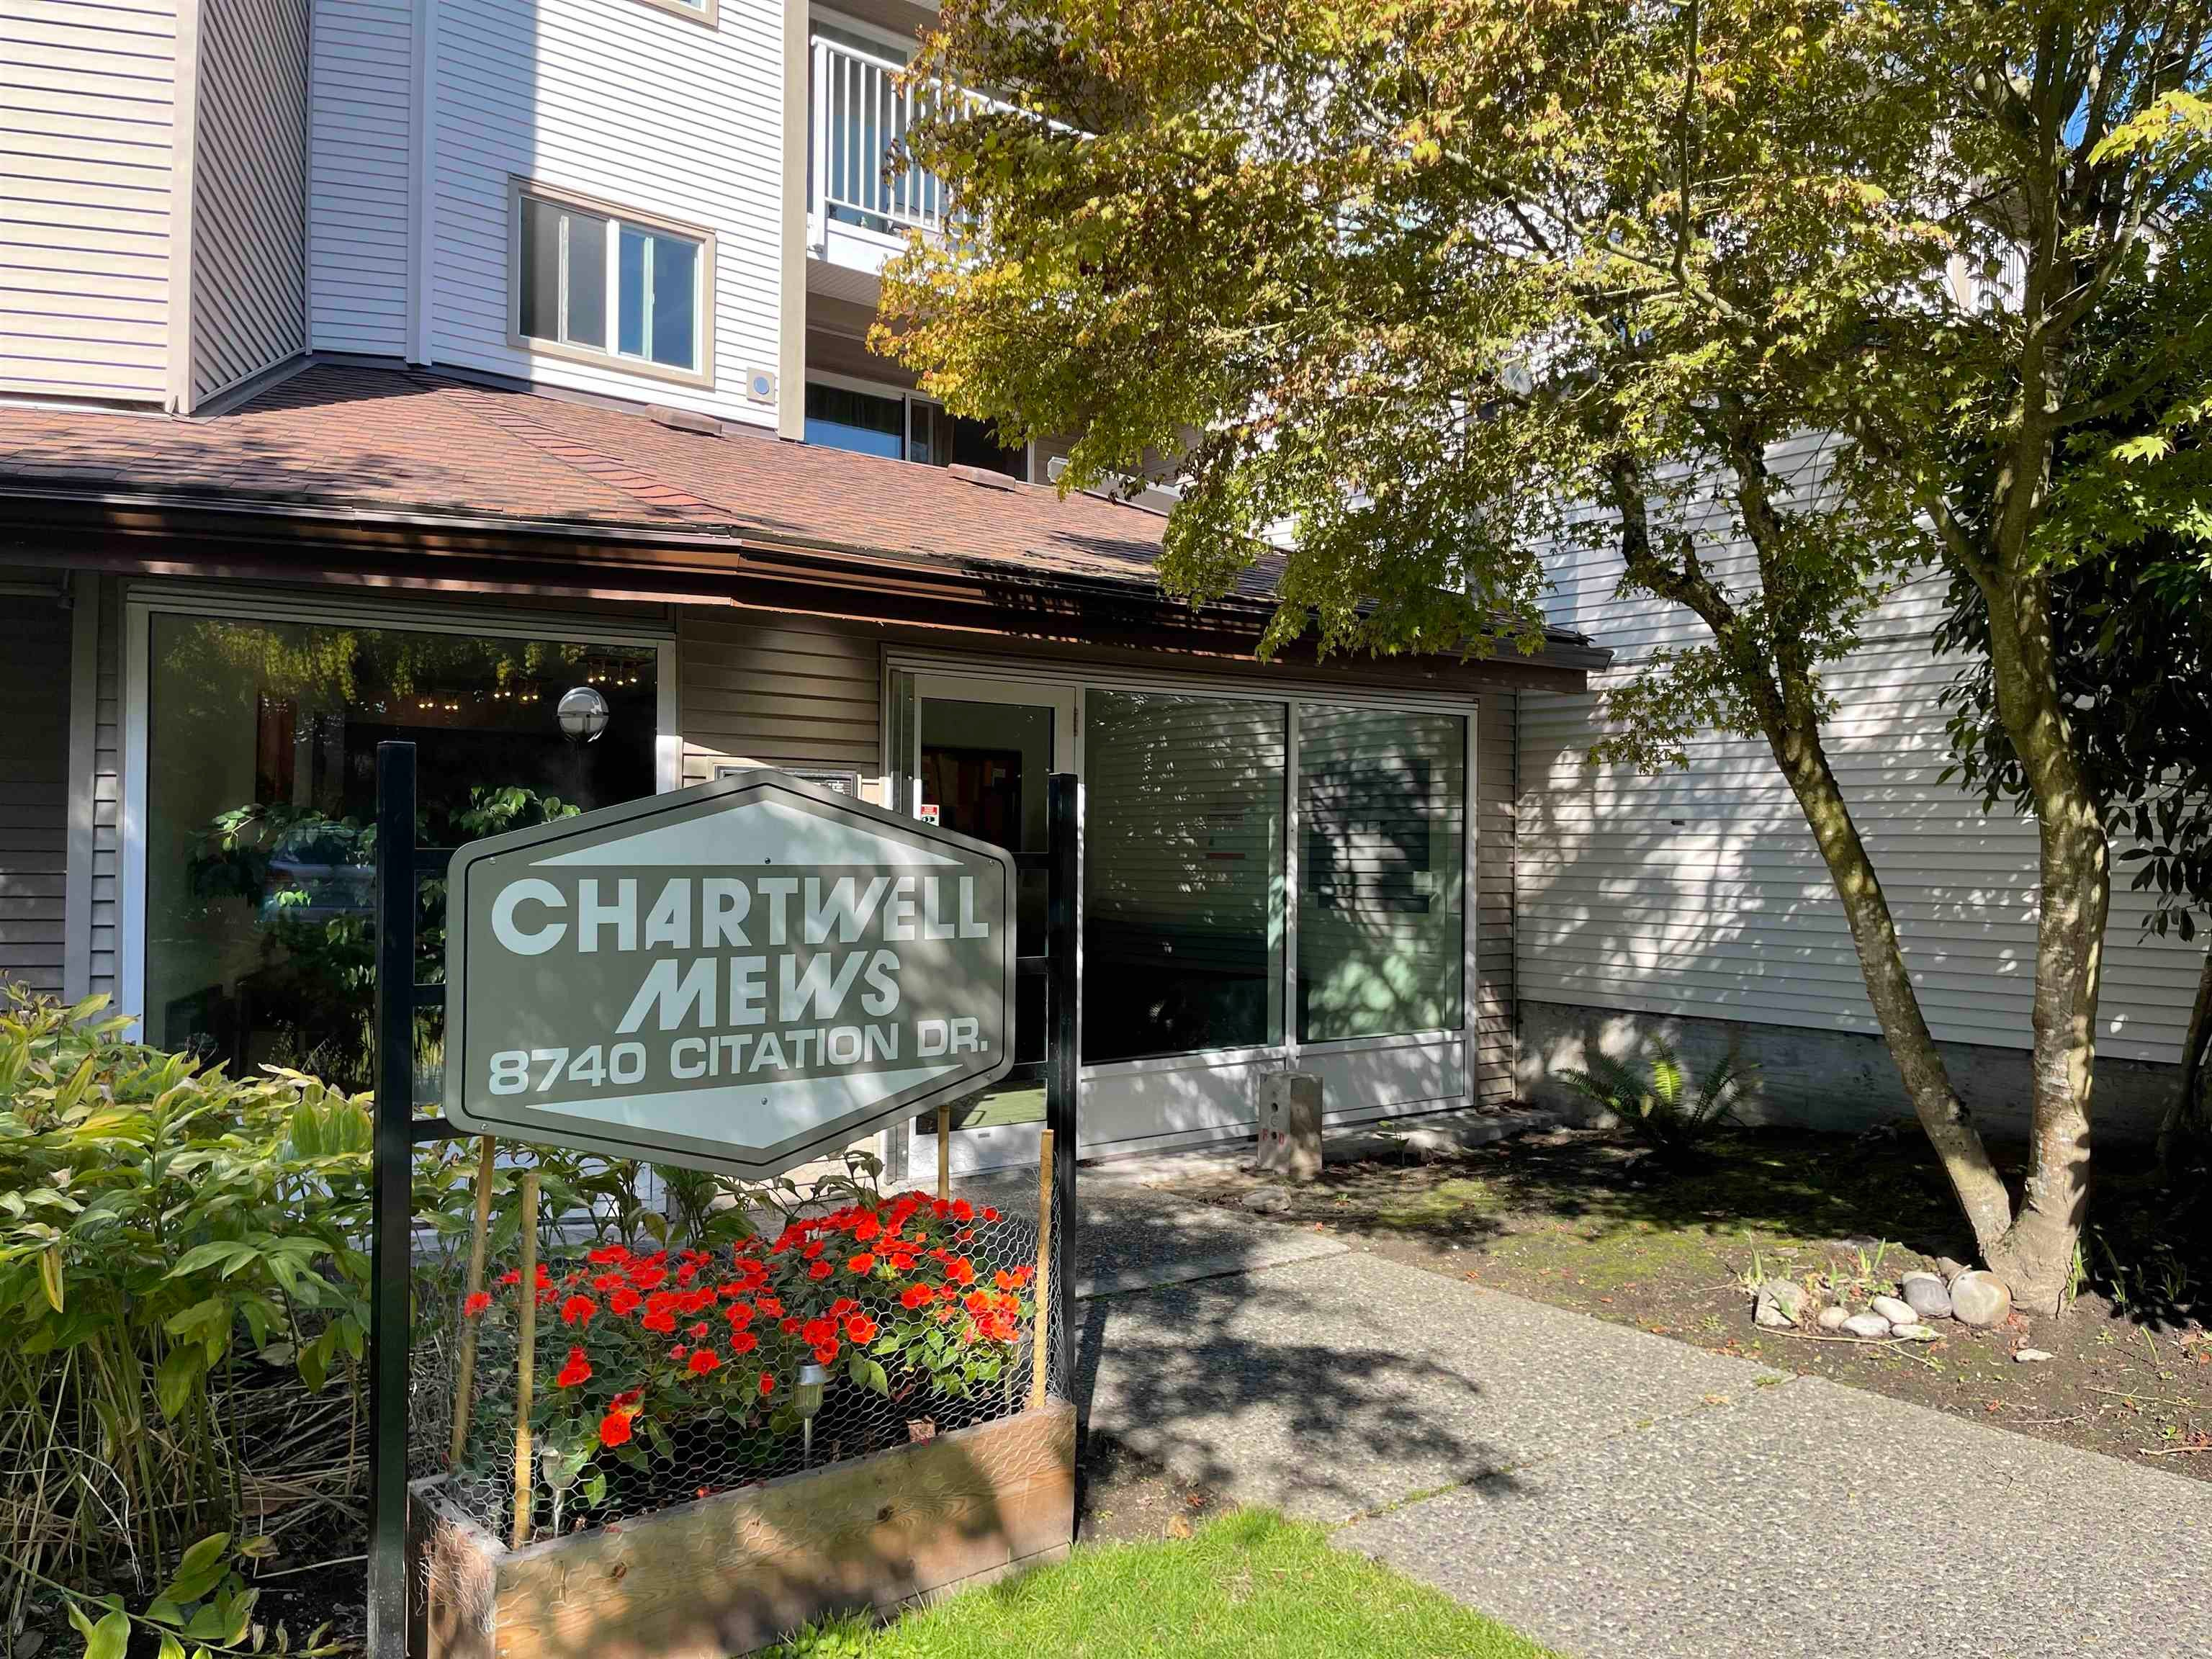 111 8740 CITATION DRIVE - Brighouse Apartment/Condo for sale, 1 Bedroom (R2624718)